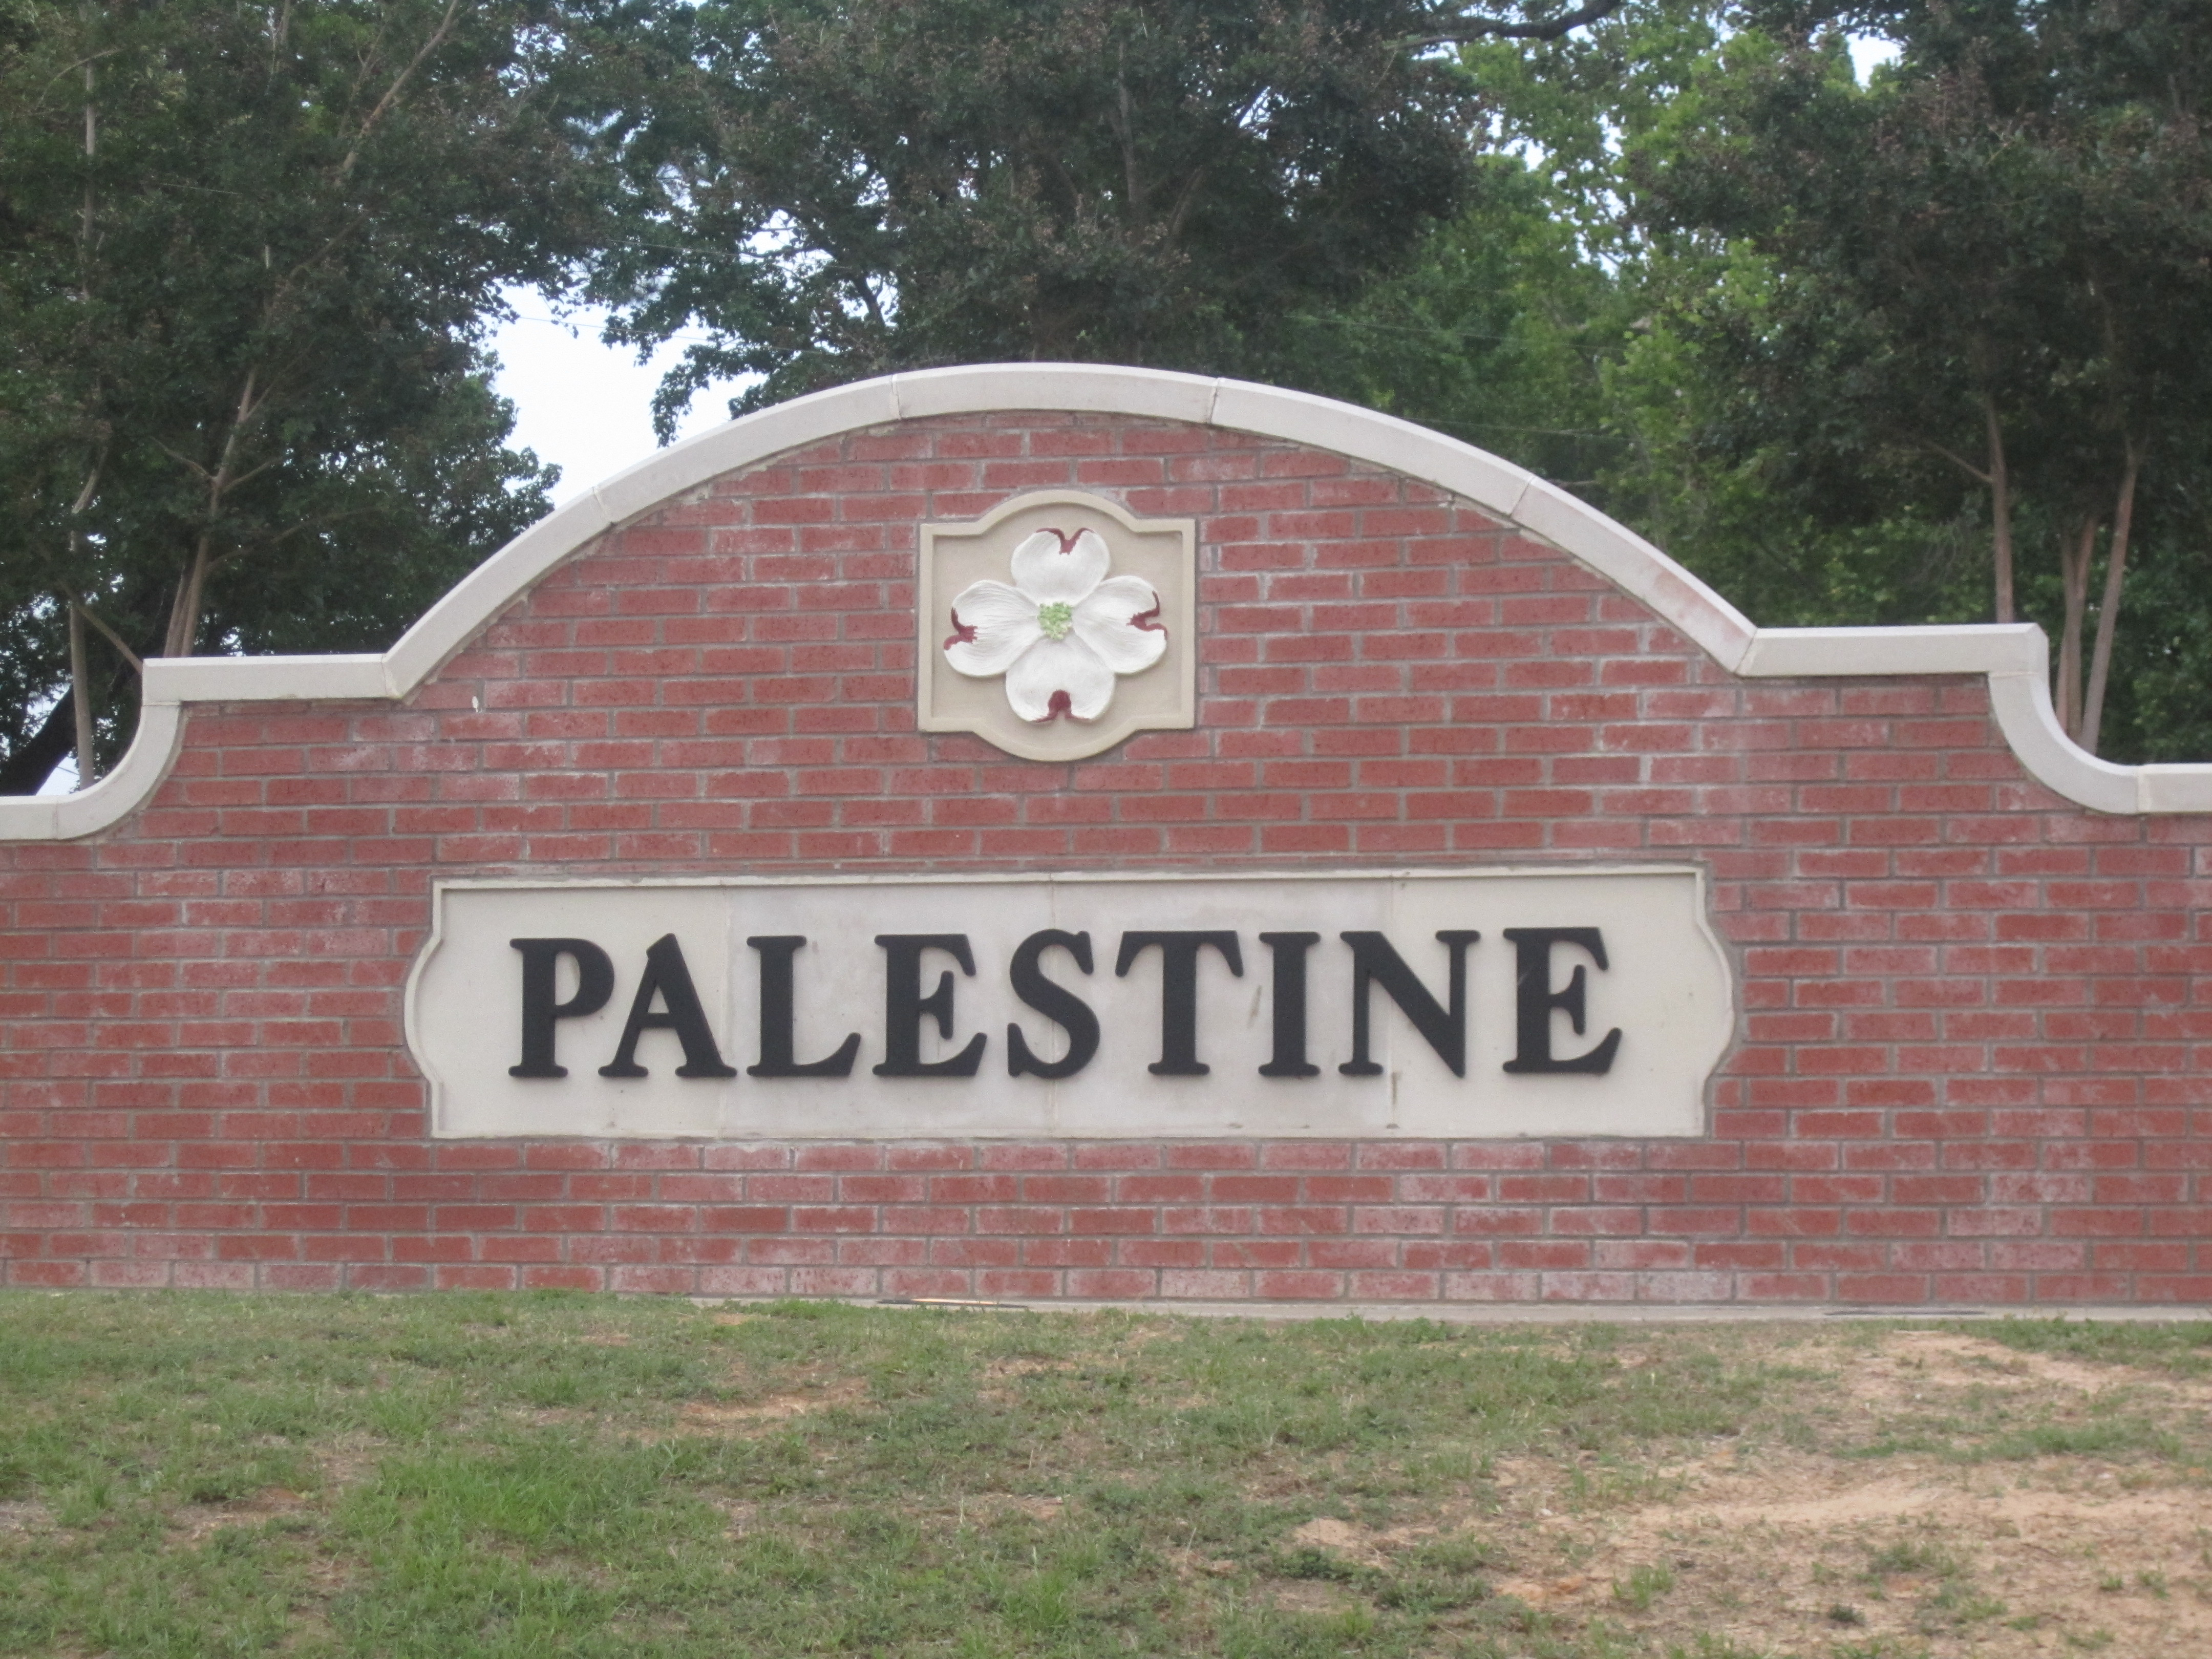 Henderson Texas likewise Happy Birthday Dad in addition I3u3j also 1162035 together with Lake Conroe Fishing Map Wgps. on palestine tx